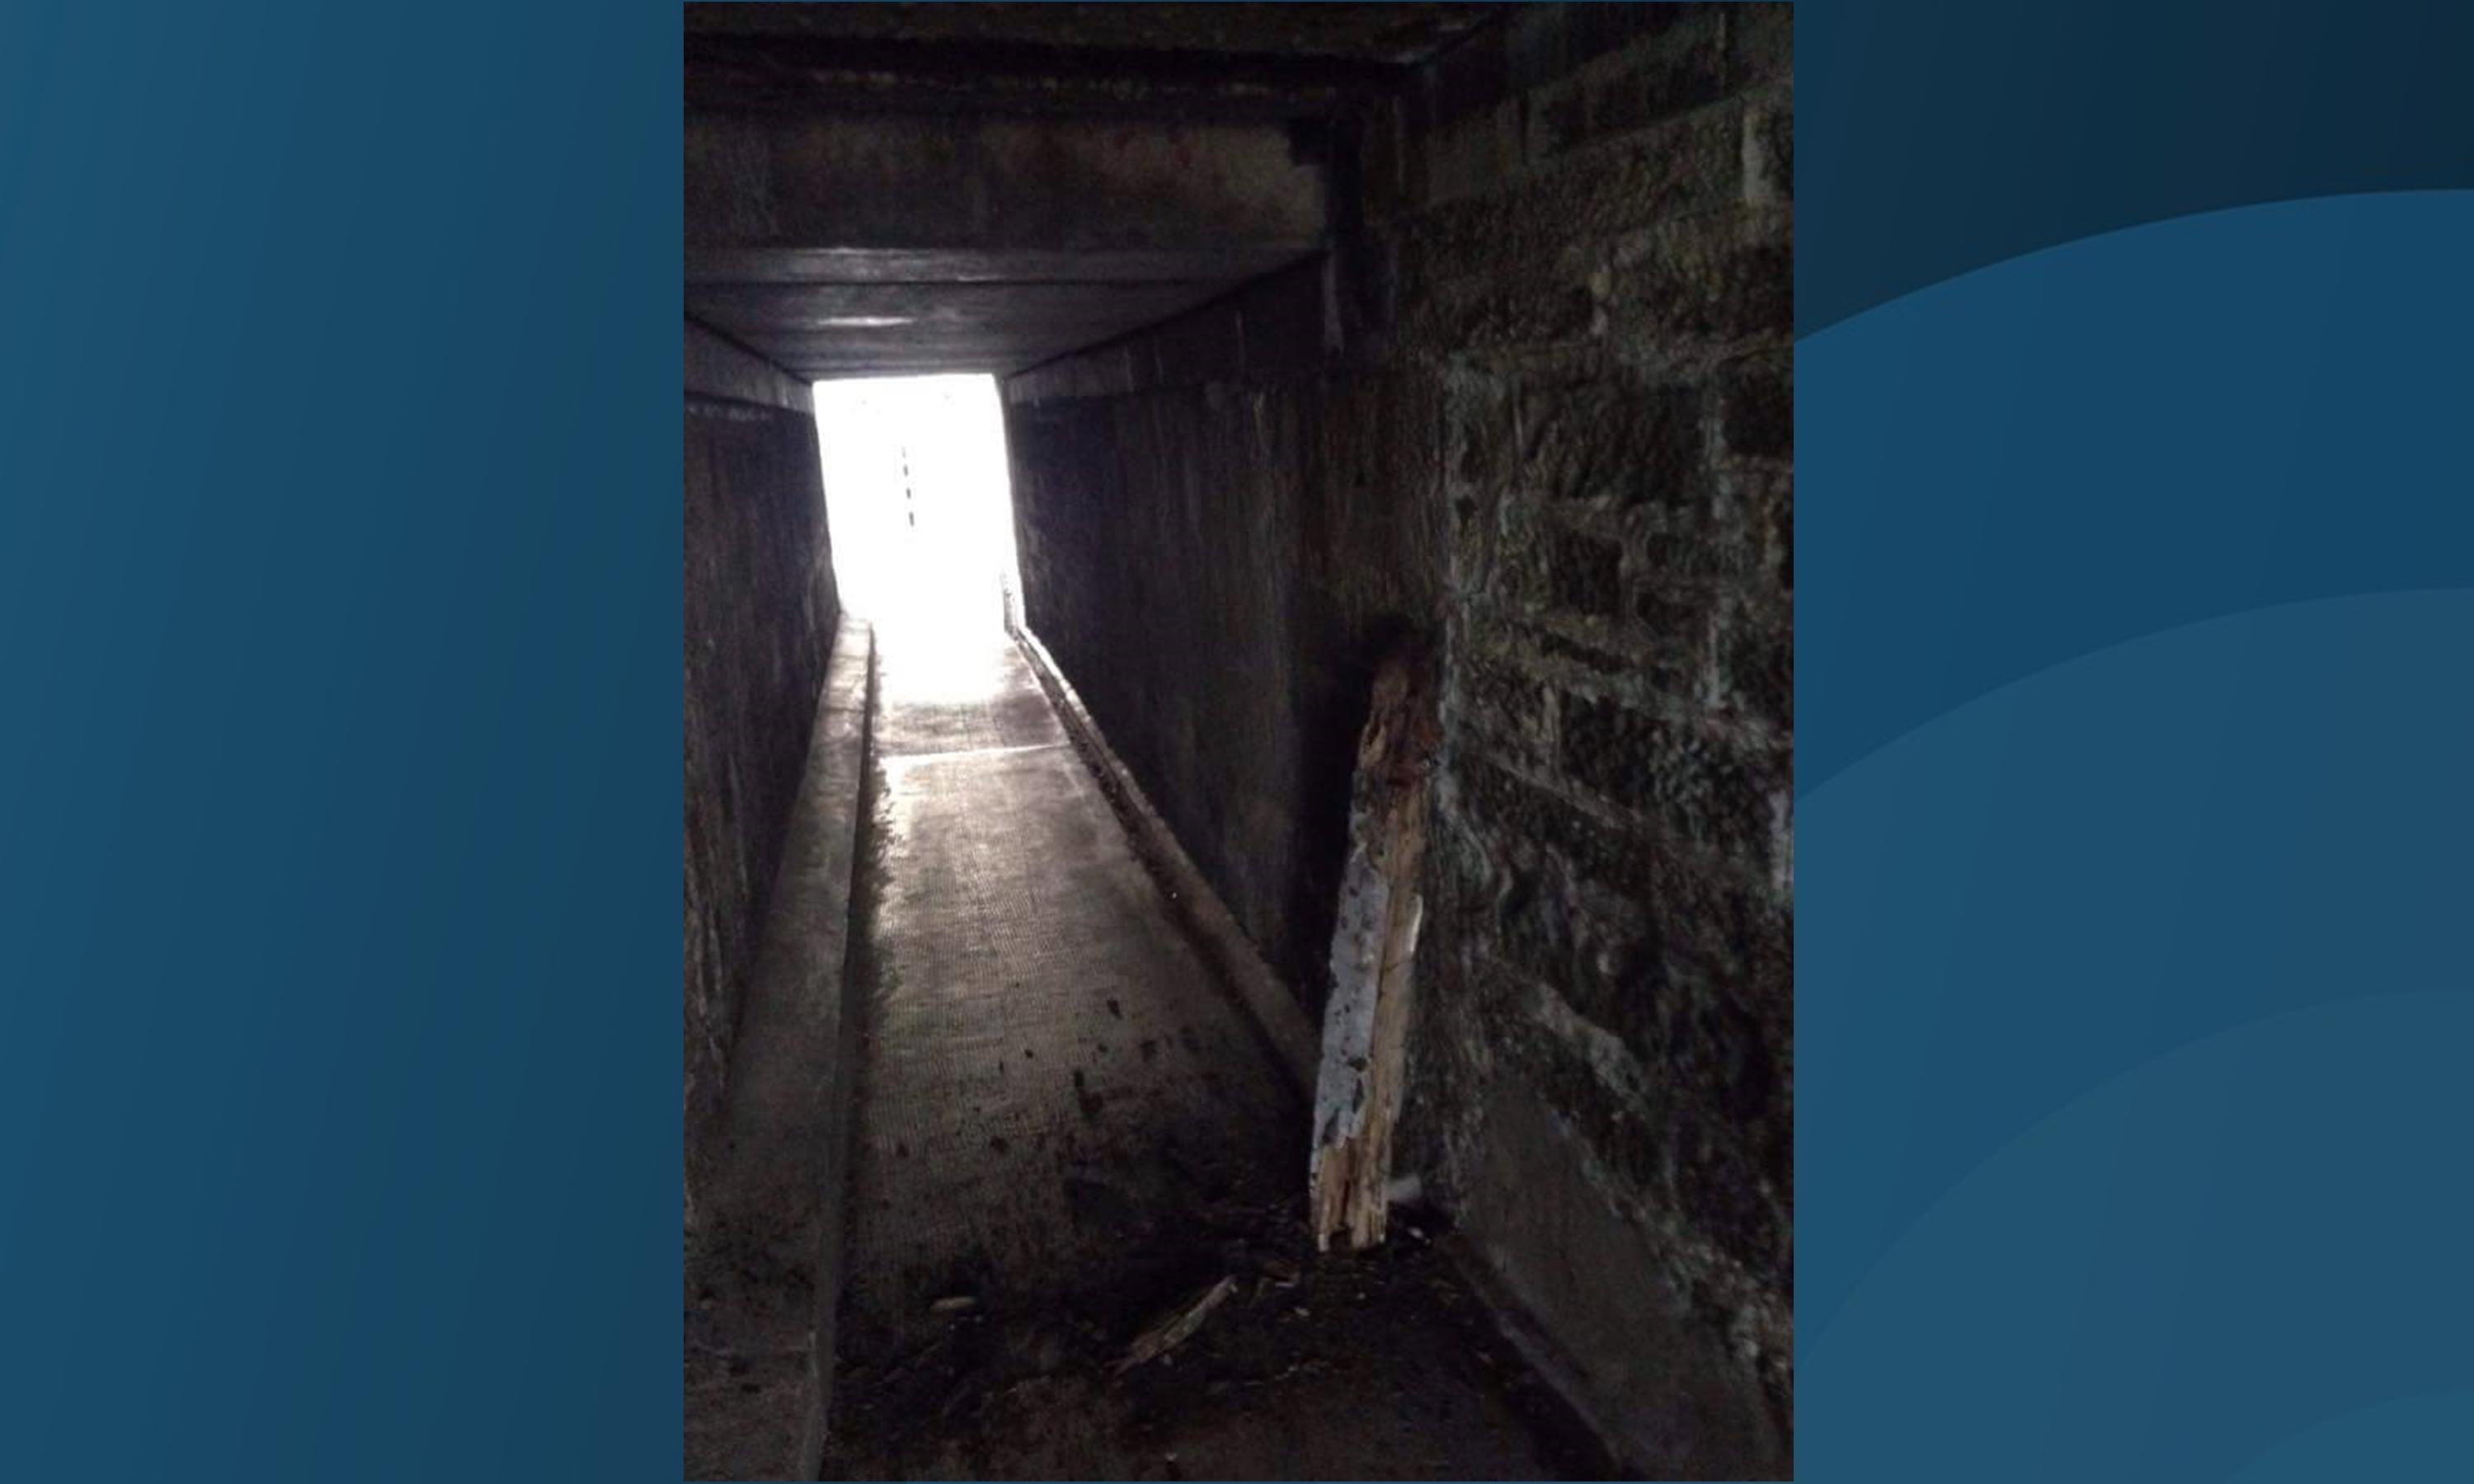 Safety concerns were raised about the Fox Street underpass.